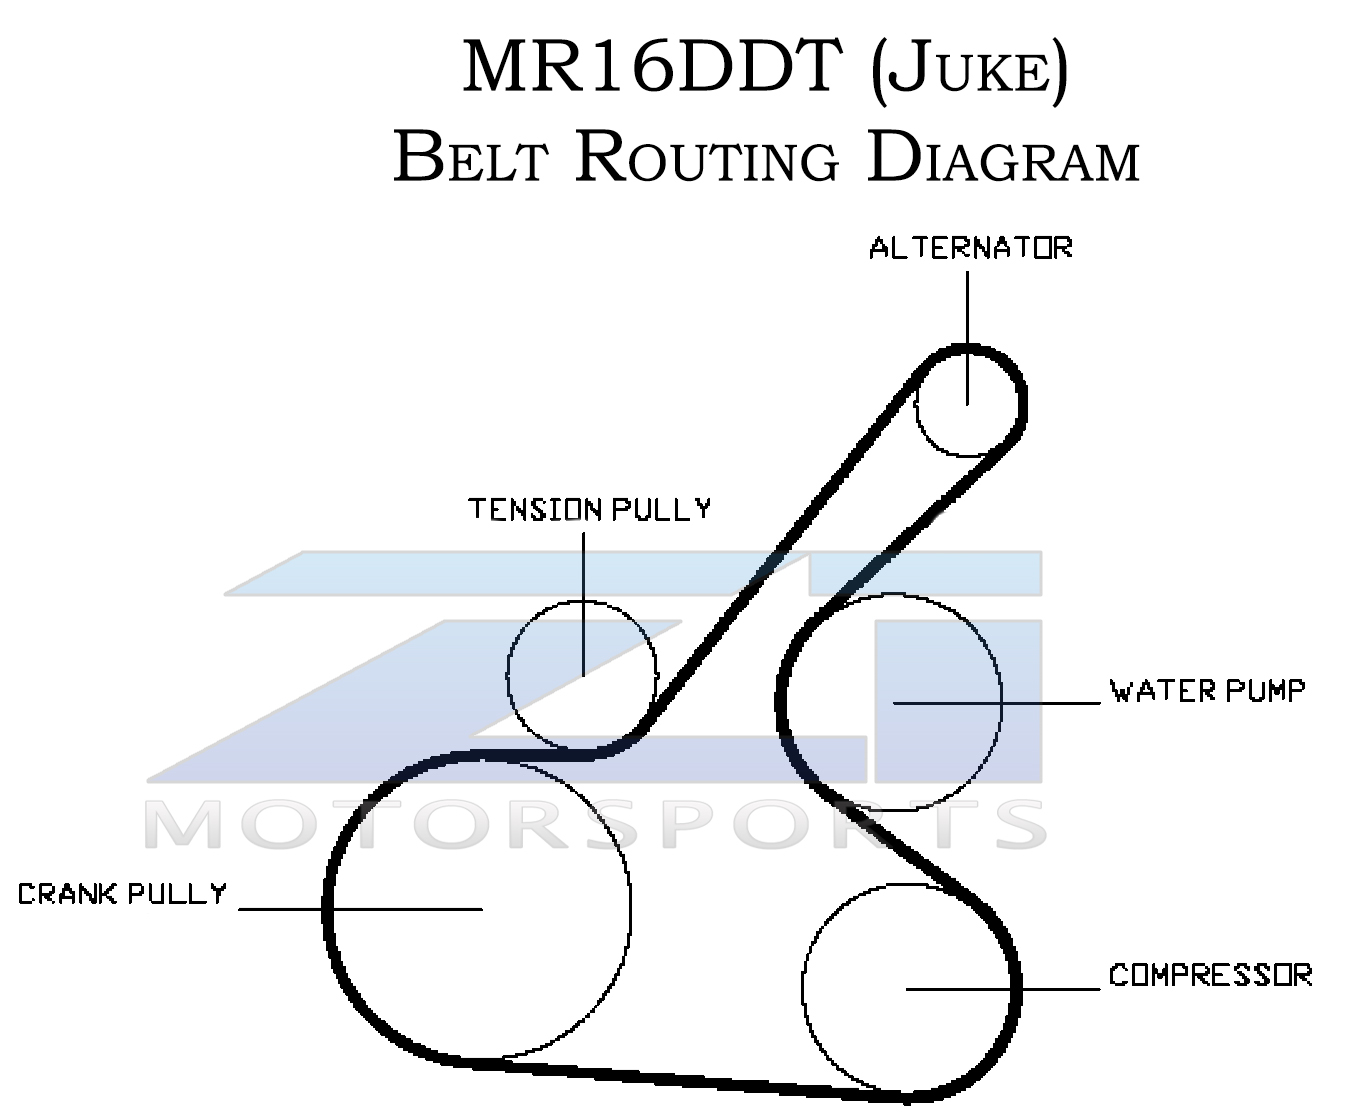 Juke Belt Diagram - Fusebox and Wiring Diagram cable-scale -  cable-scale.paoloemartina.itdiagram database - paoloemartina.it